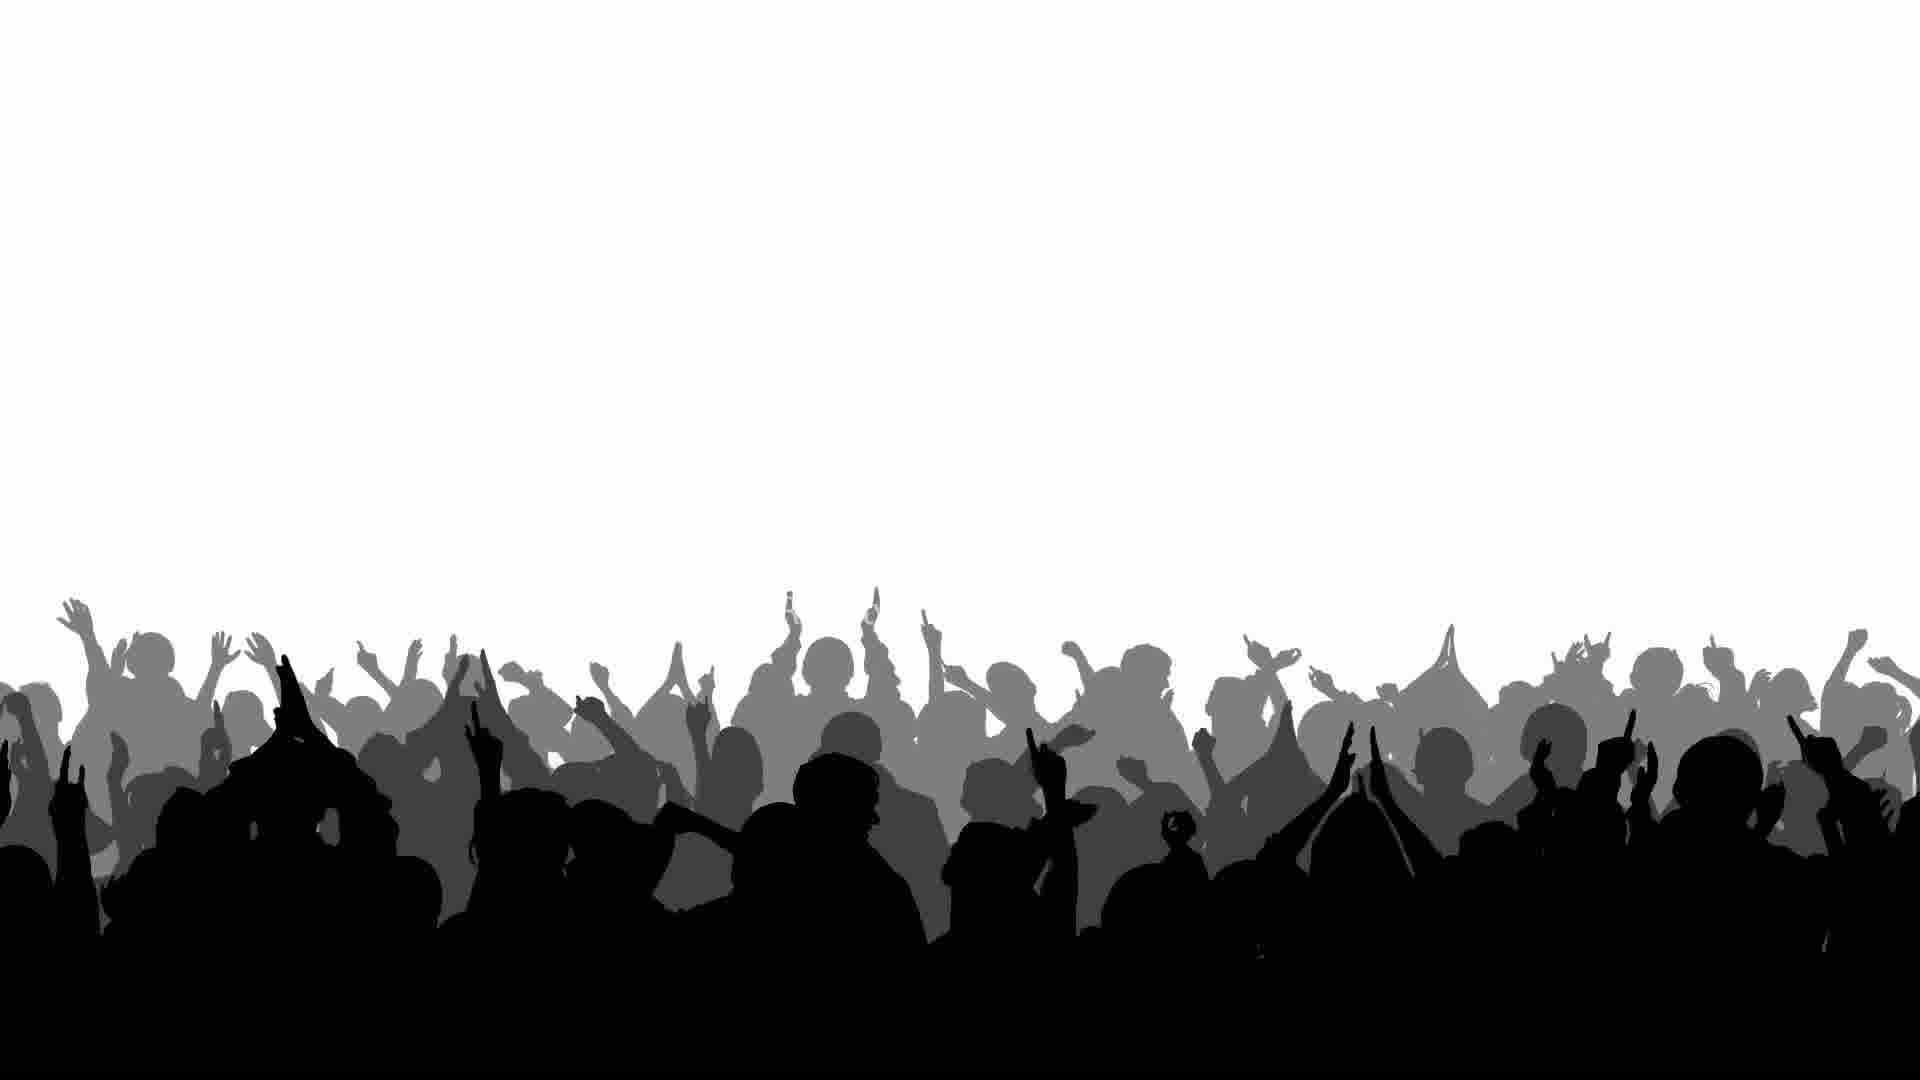 Crowd clipart drawing Cheering Clipart Drawing Pictures Crowd